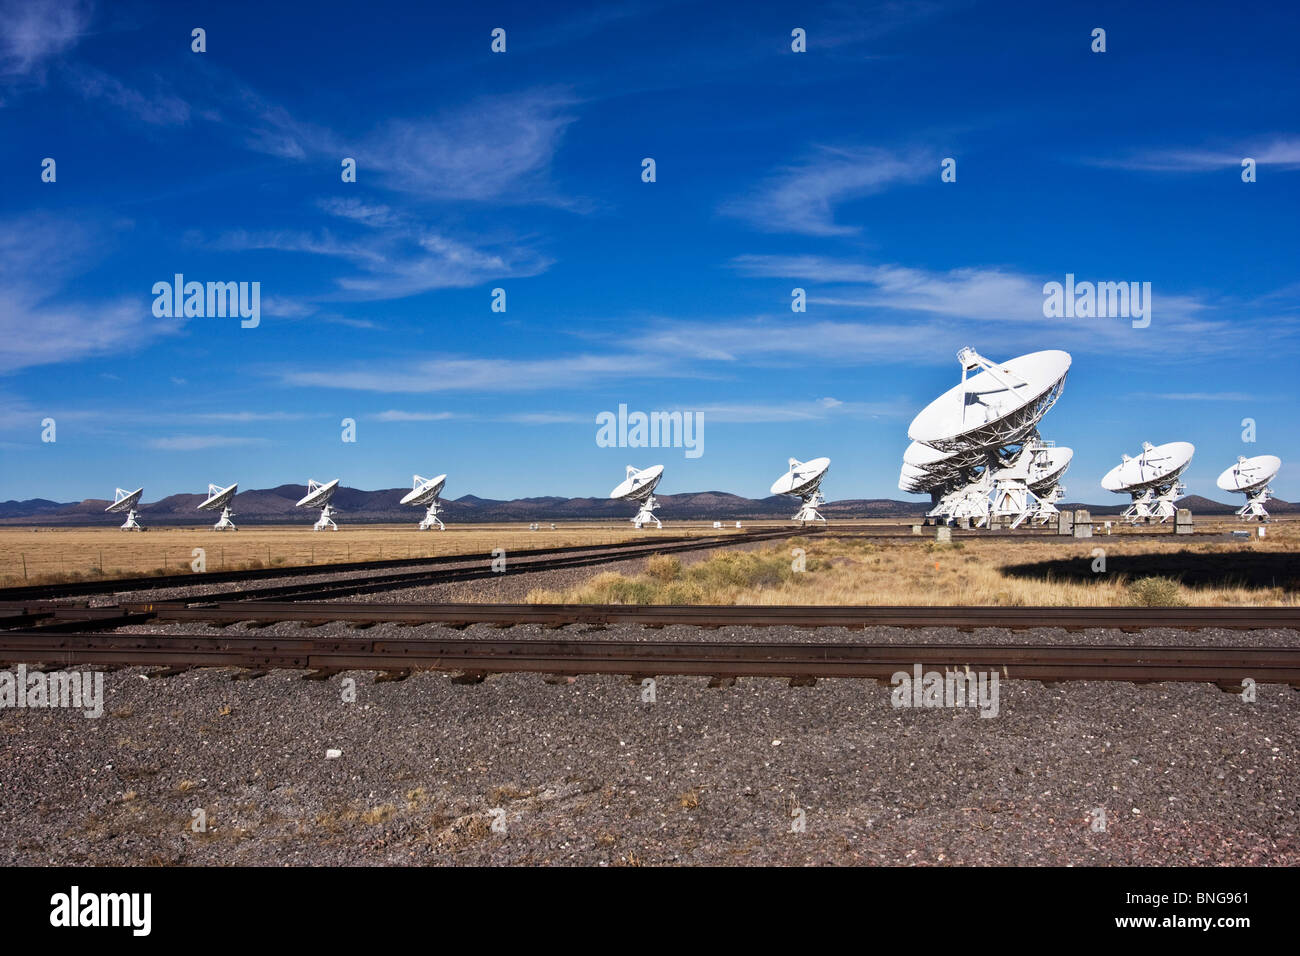 VLA's VERY LARGE ARRAY sit on the PLAINS of San Augustine in New Mexico, USA - Stock Image